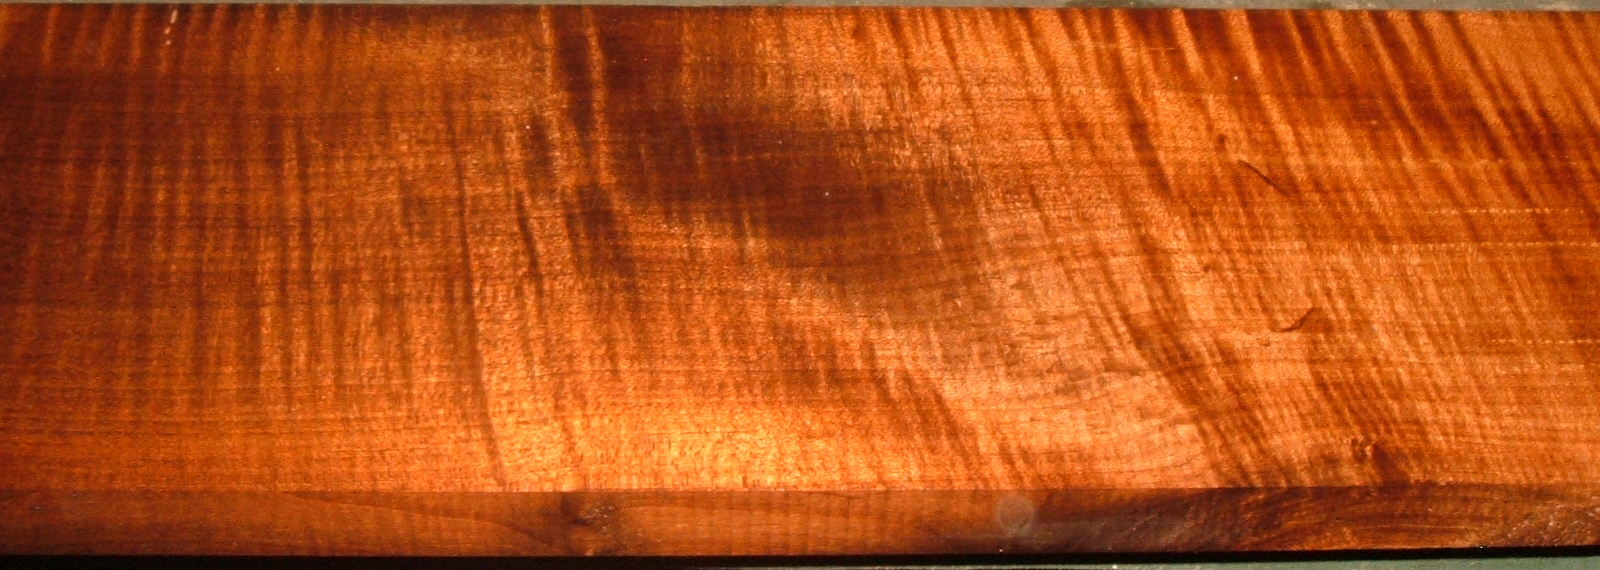 QRM2001-5, 15/16x6x43, Roasted Torrefied, Curly Tiger Quartersawn Maple